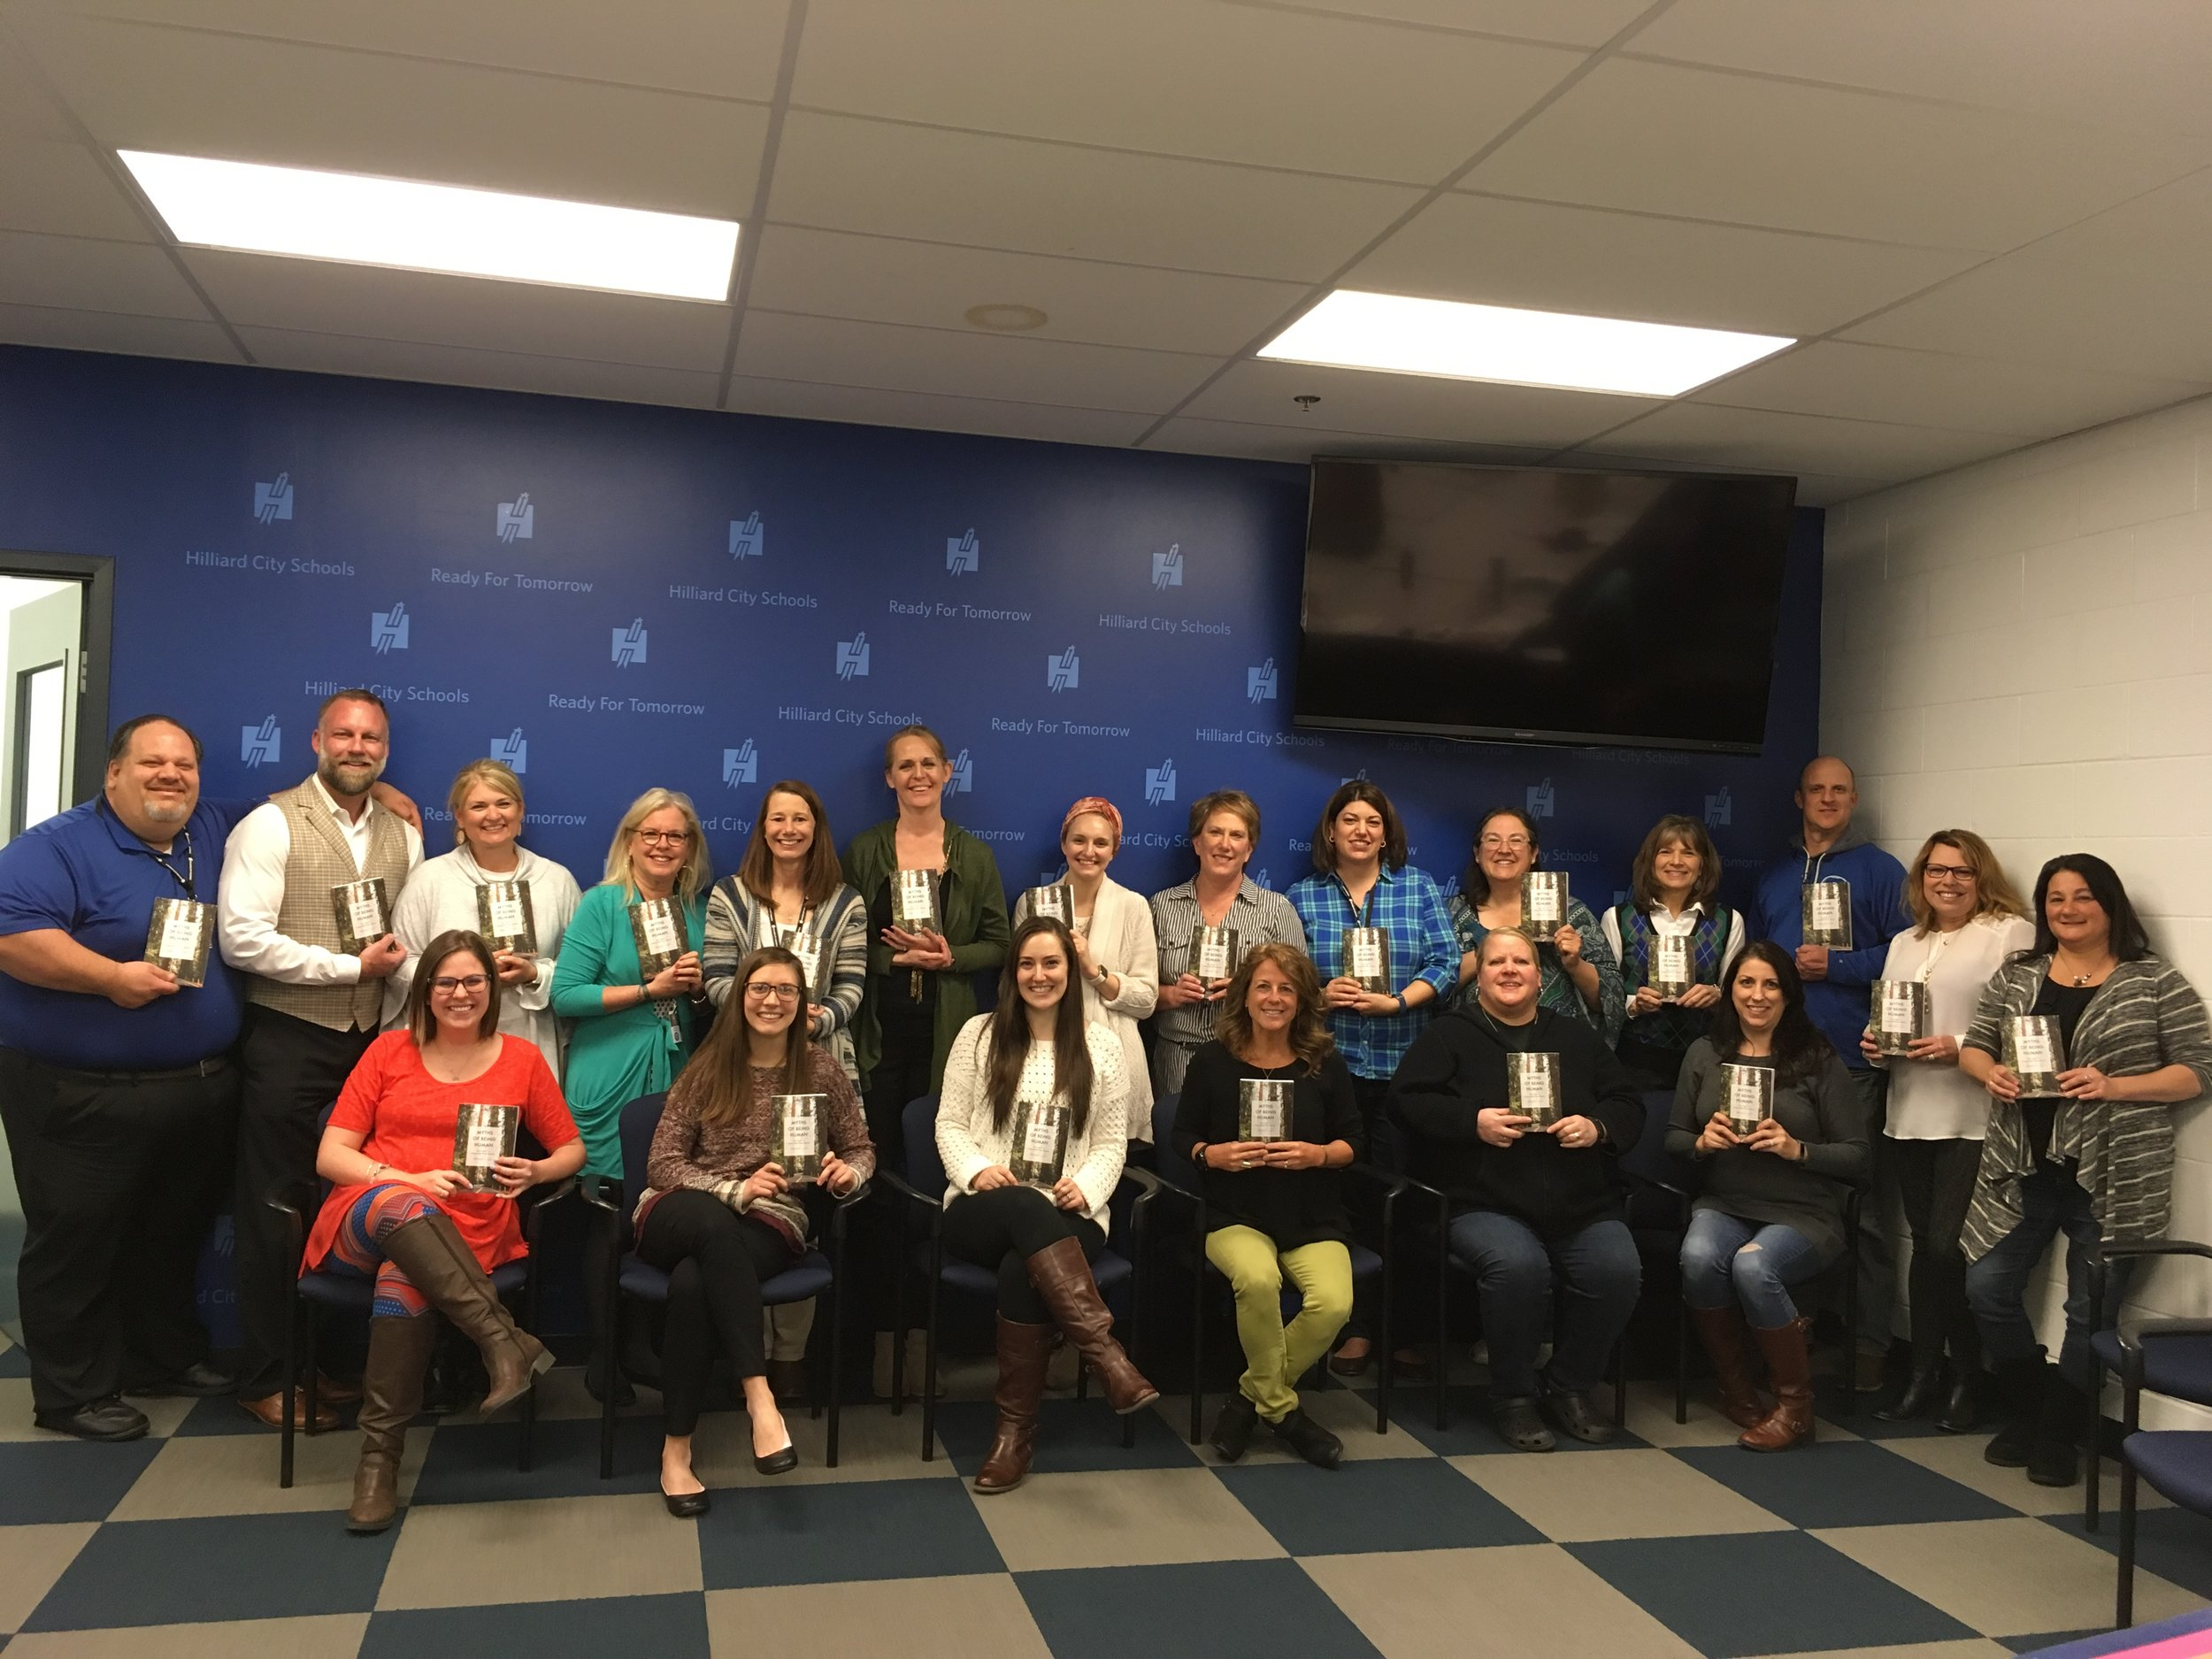 Hilliard City Schools - I received all positive feedback about the mindfulness course with Brandi. All participants I talked to were so glad to be able to have this offered to them and felt value in each session.— Molly Martin, Wellness Coordinator